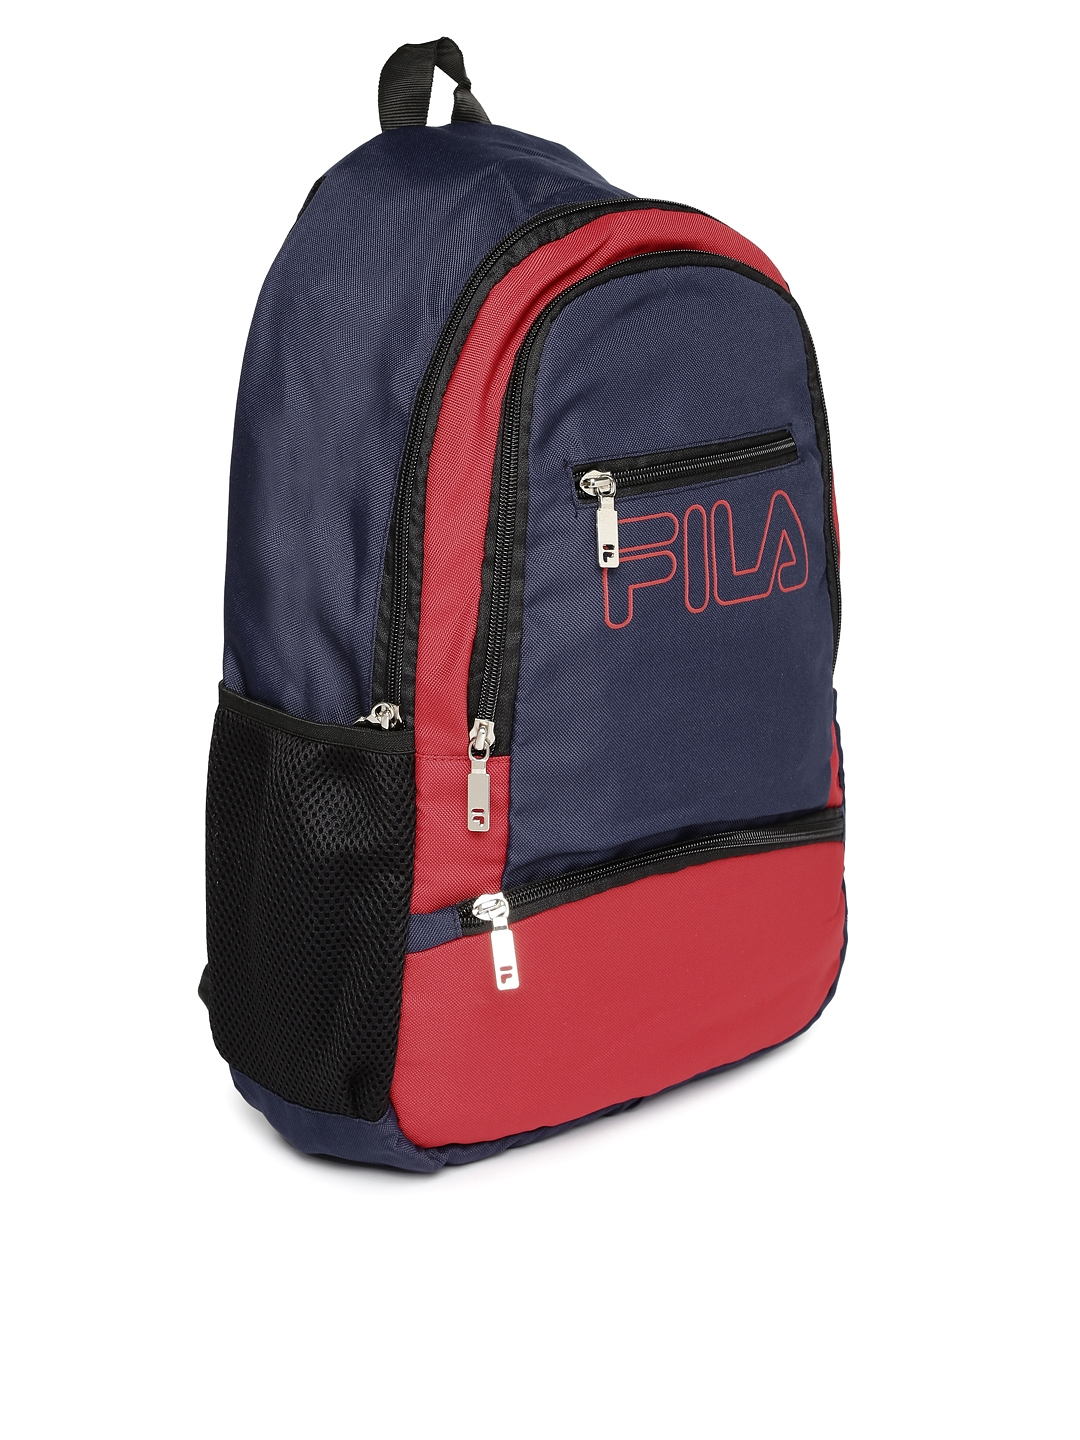 afb8d2c70a89 Buy FILA Unisex Navy   Red Laptop Backpack - Backpacks for Unisex ...